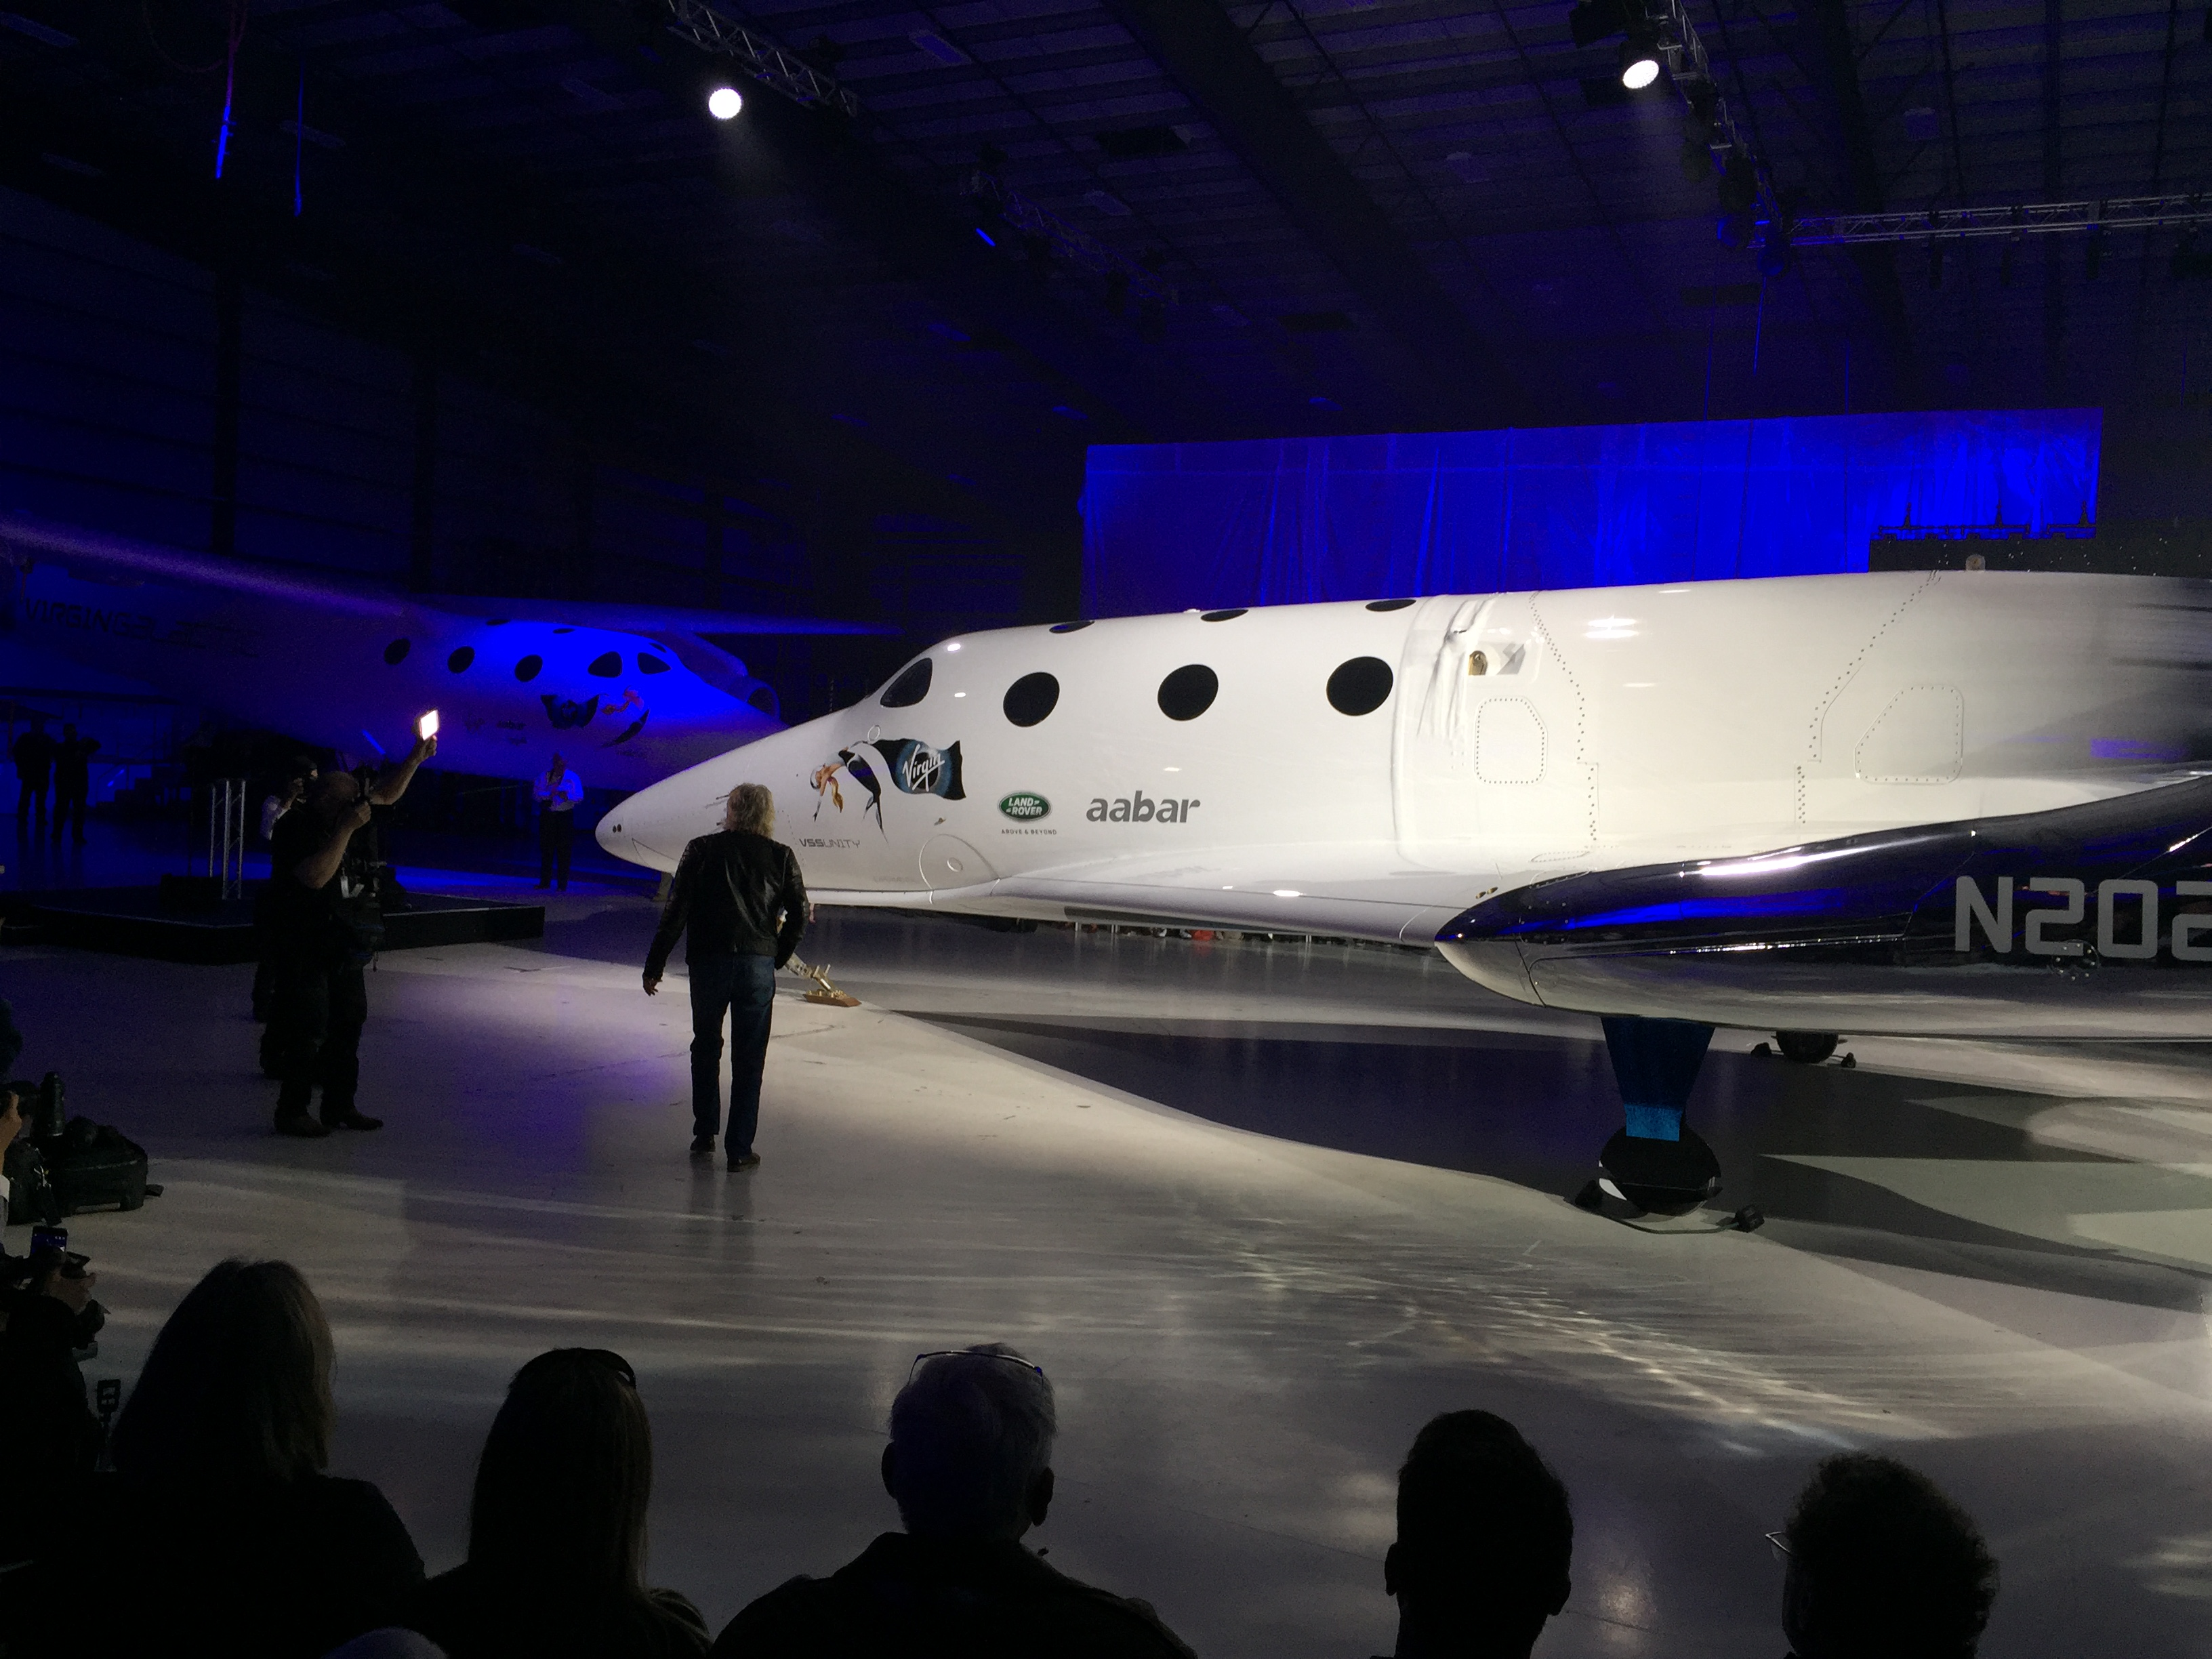 Richard Branson and VSS Unity